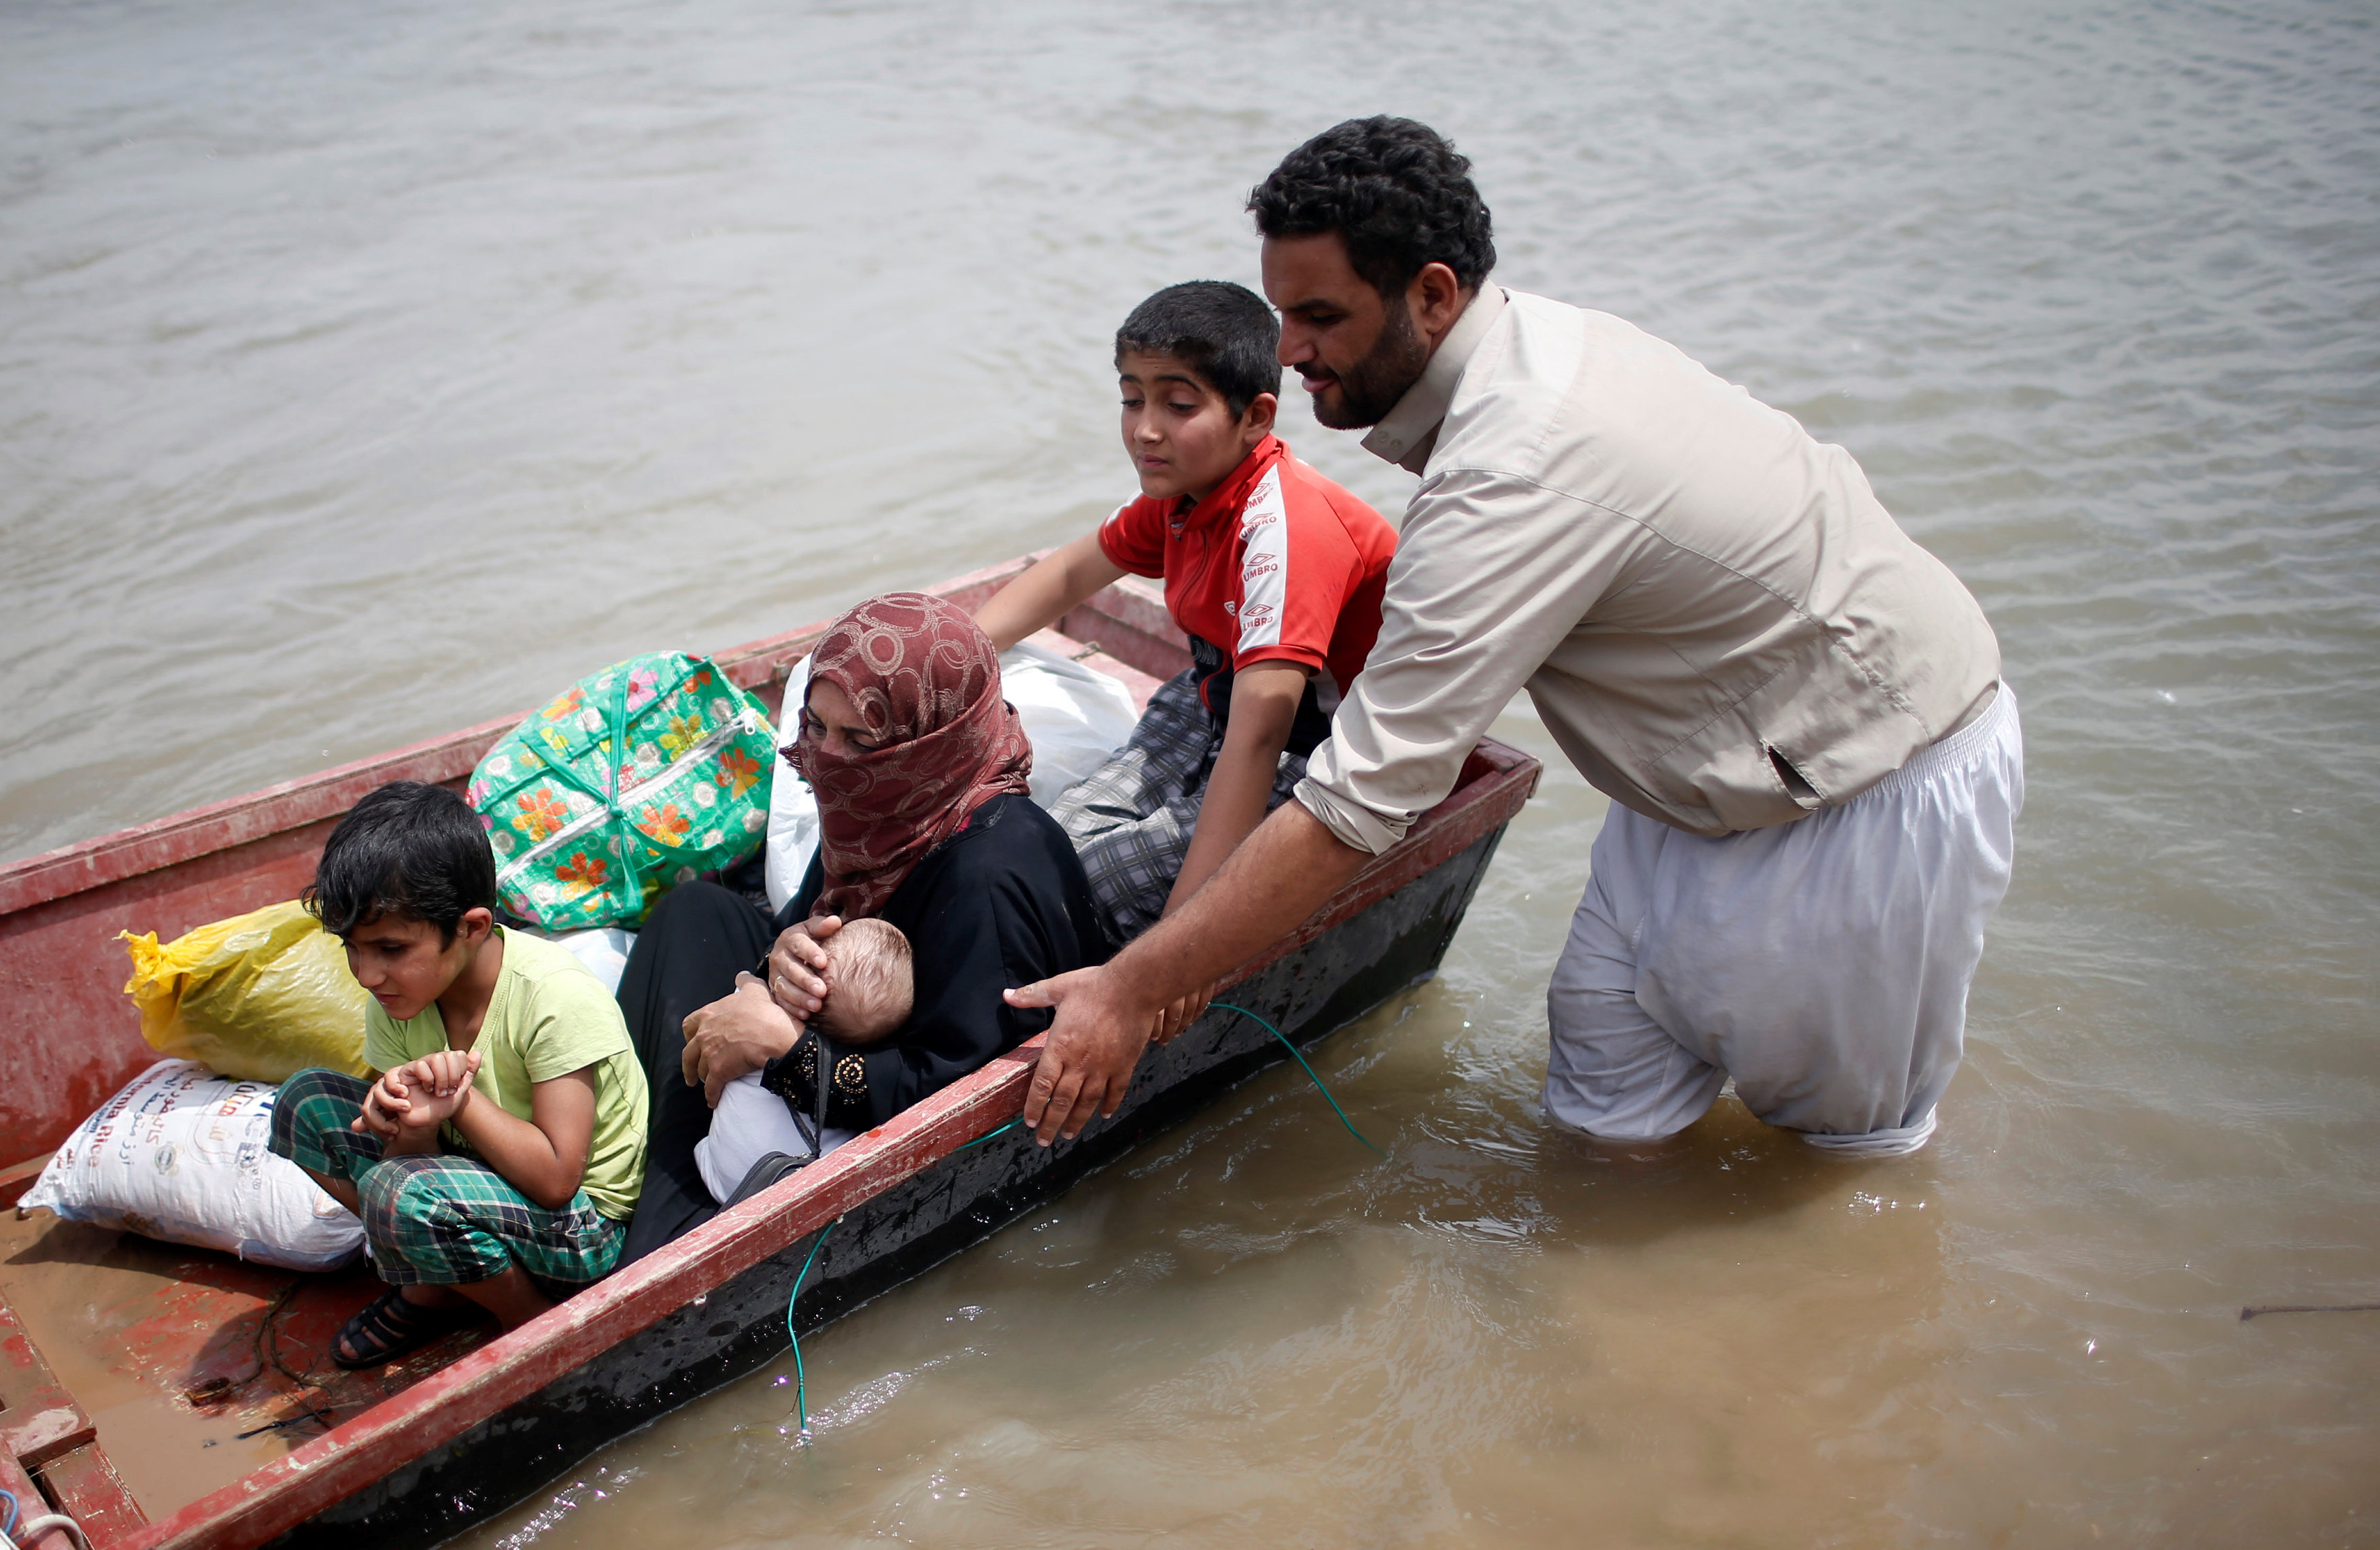 Displaced Iraqis cross the Tigris River by boat after the bridge has been temporarily closed, in western Mosul, Iraq May 6, 2017. REUTERS/Suhaib Salem